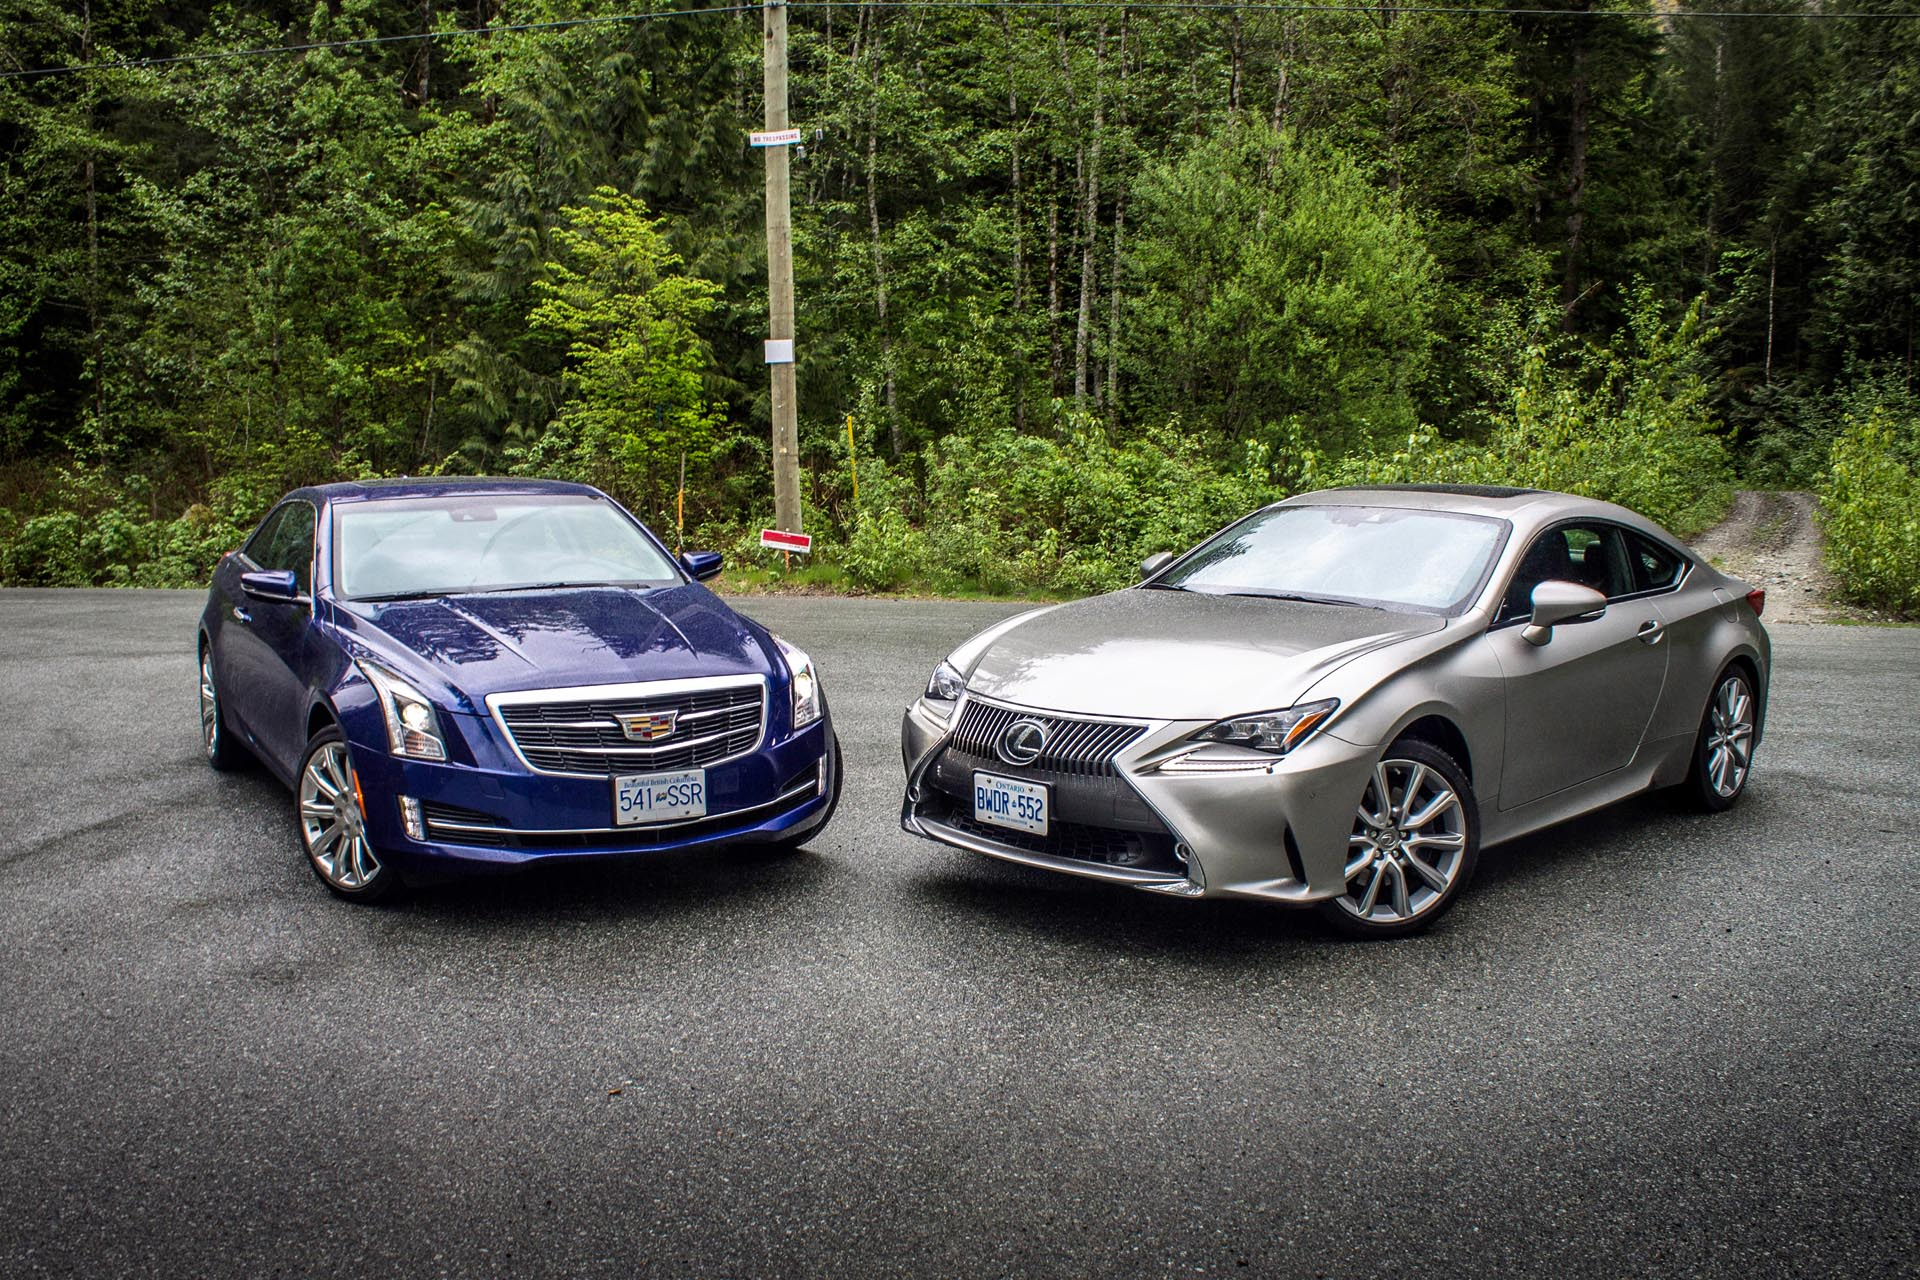 2015 cadillac ats vs lexus rc 350. Black Bedroom Furniture Sets. Home Design Ideas